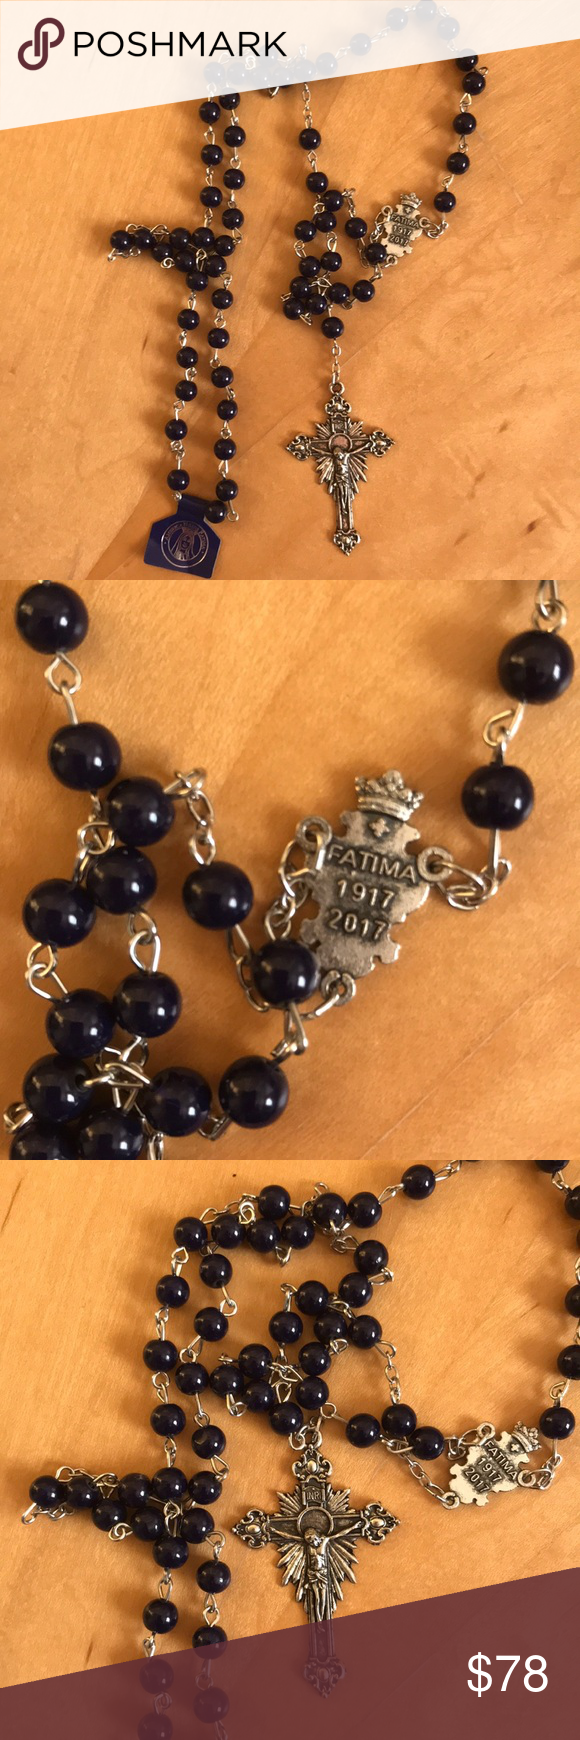 Fatima 100 years anniversary prayer nwt Silver tone chain with navy blue beads,1917-2017 fatima rosary Jewelry Necklaces #rosaryjewelry